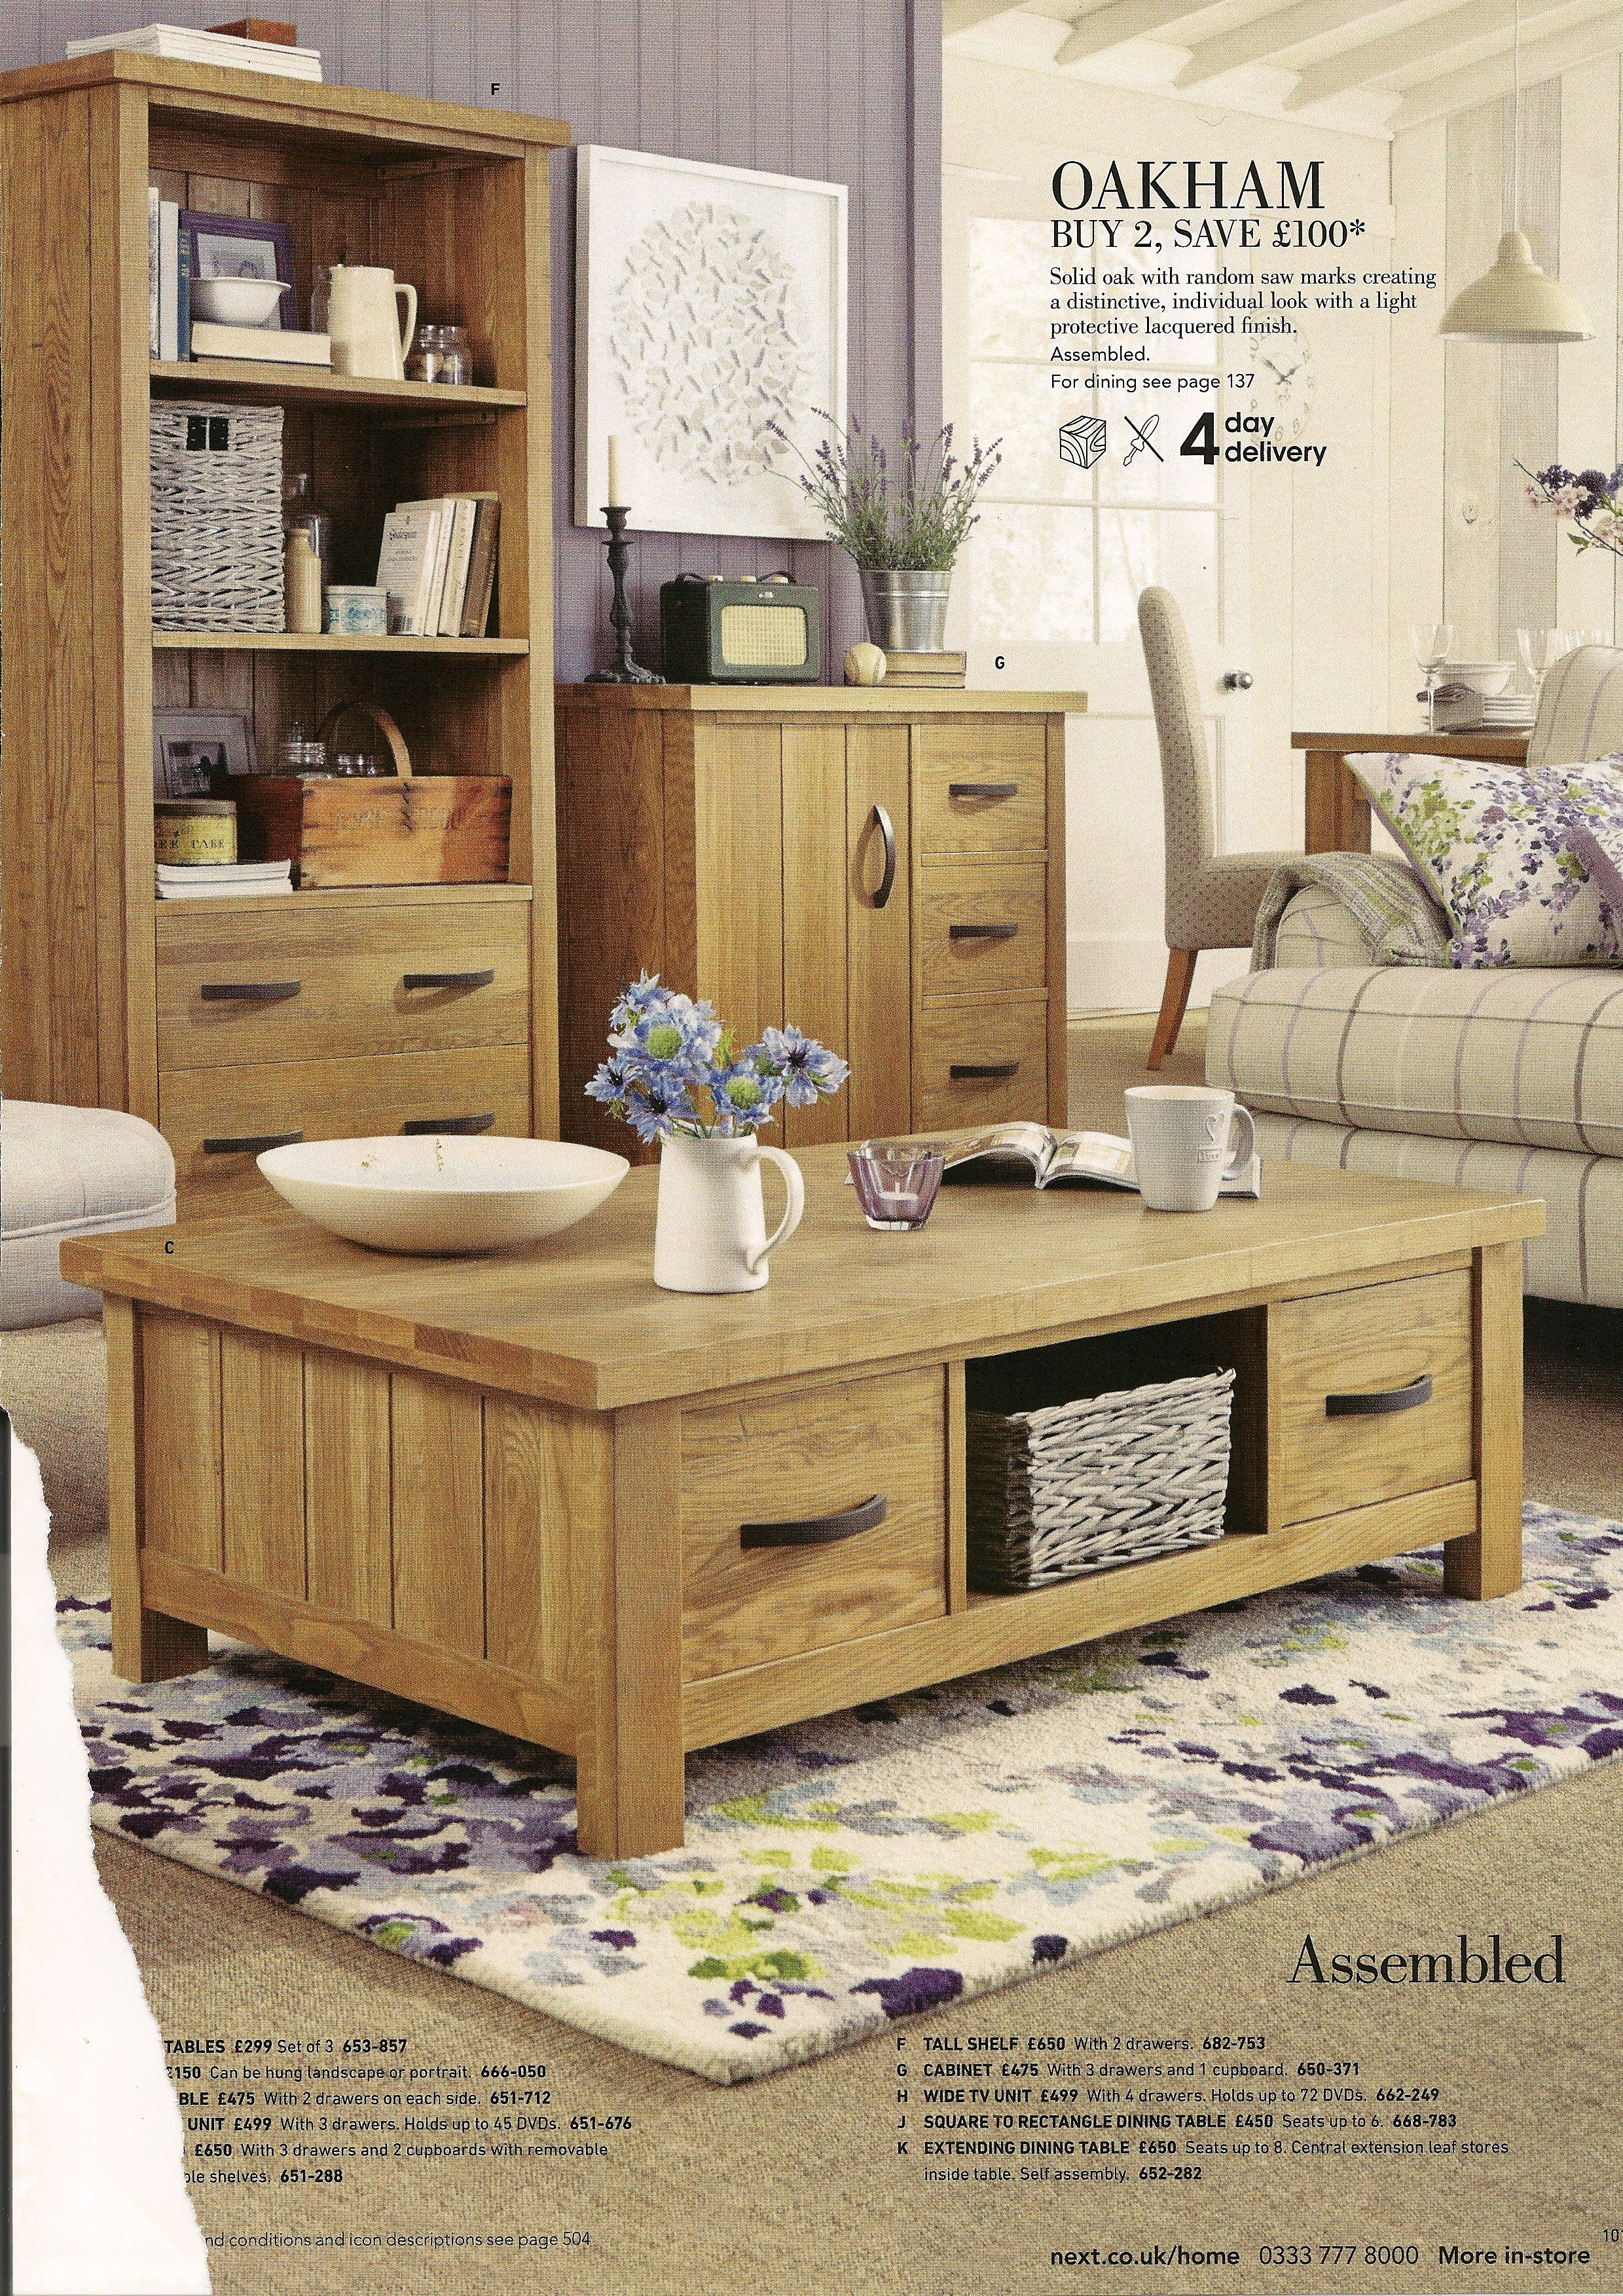 Oakham Living Cabinet 475 Tall Shelf 650 Coffee Table 475 Nice Metal Handles On This Range Oakham Coffee Table Tall Shelves #tall #table #for #living #room